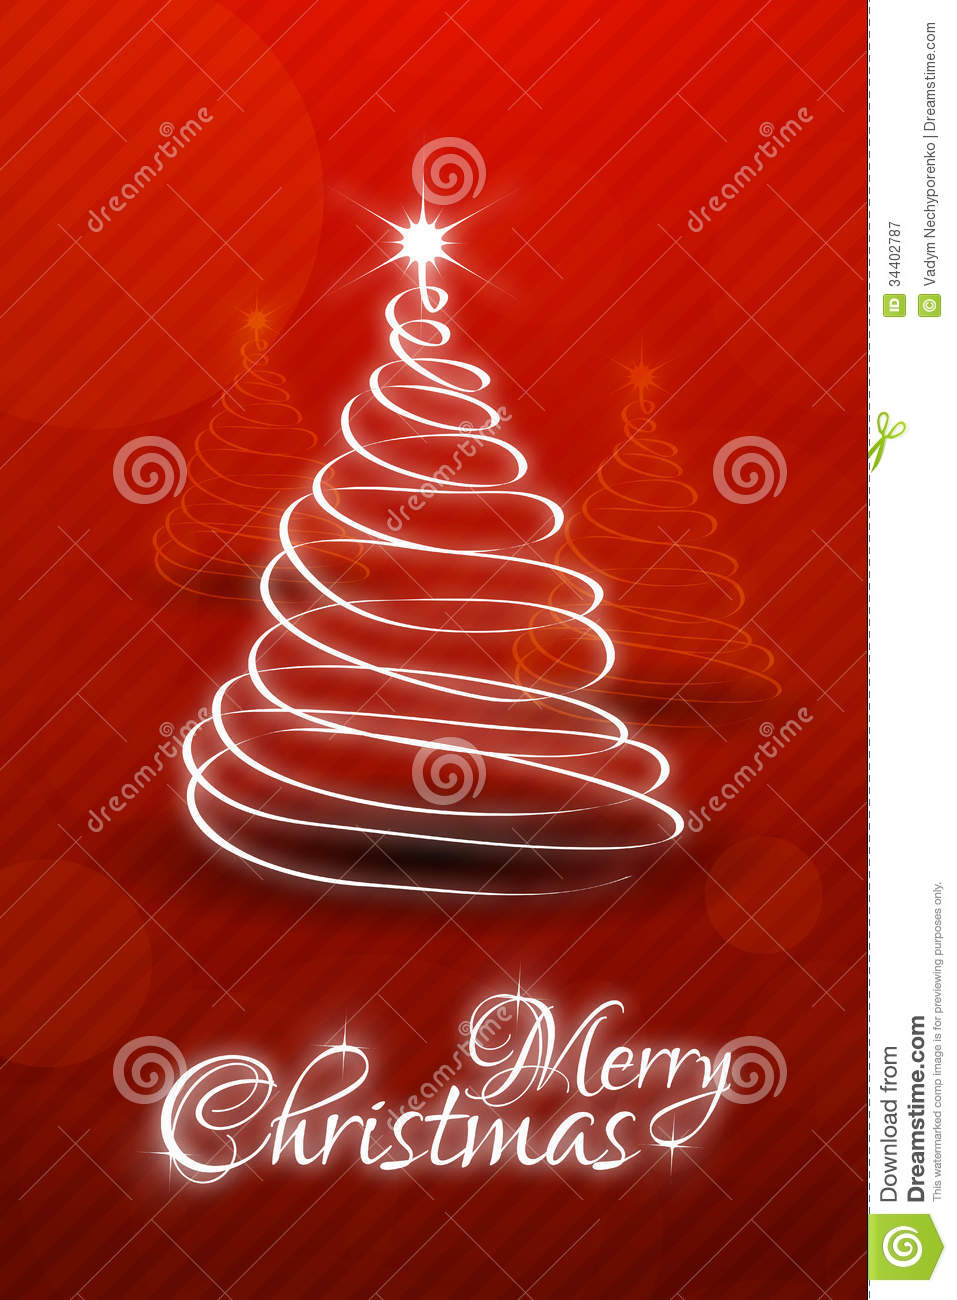 Christmas card template stock vector image of copy for Free christmas card templates for photographers